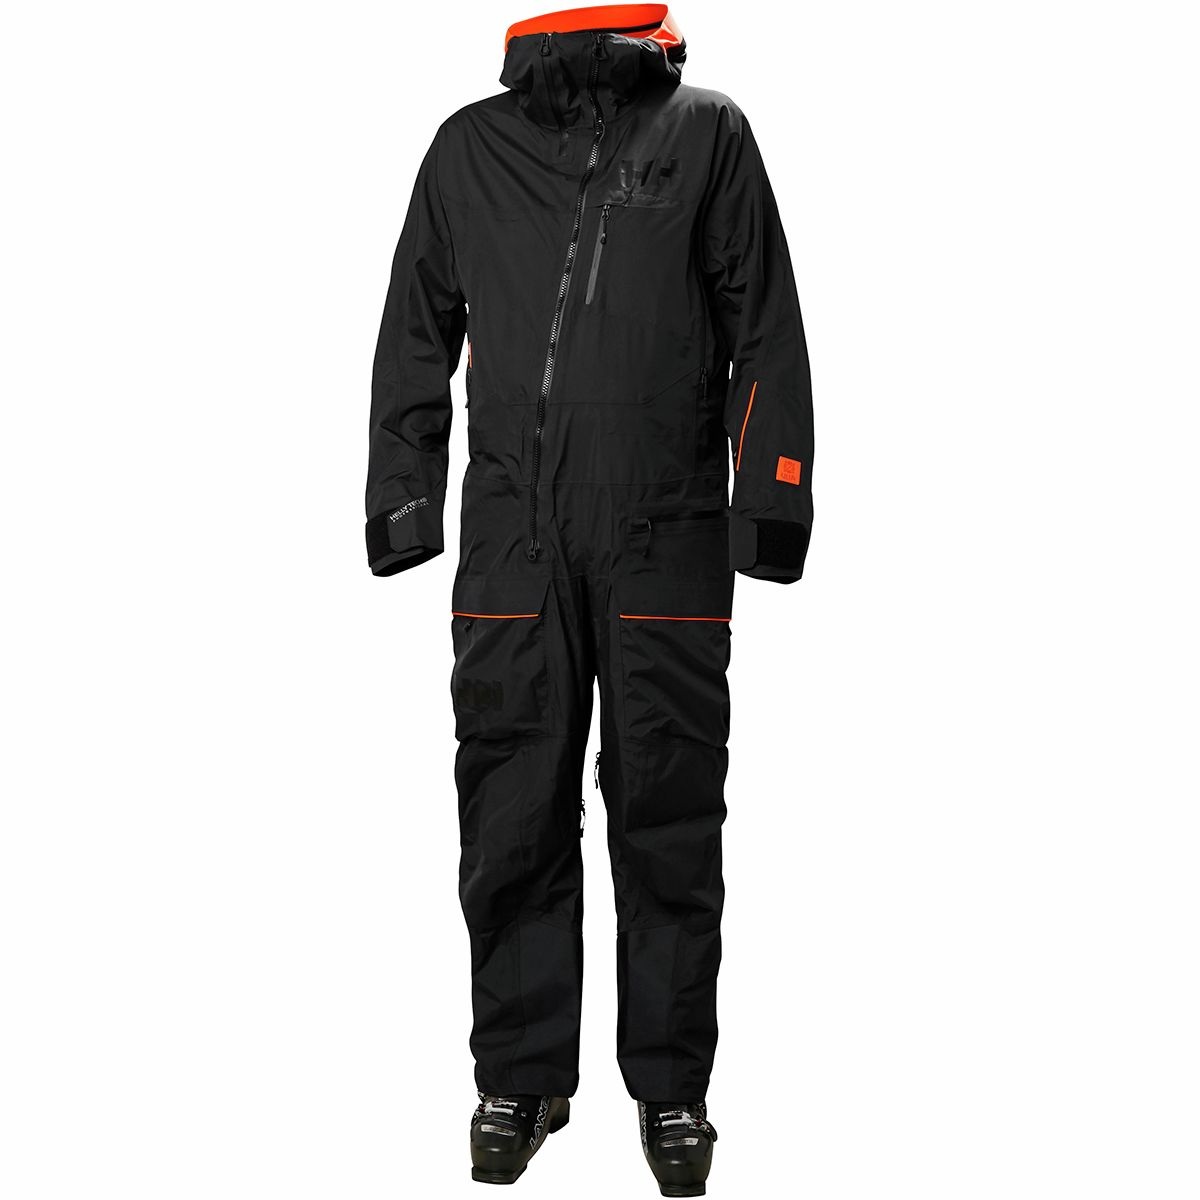 photo: Helly Hansen Ullr Powder Suit synthetic insulated suit